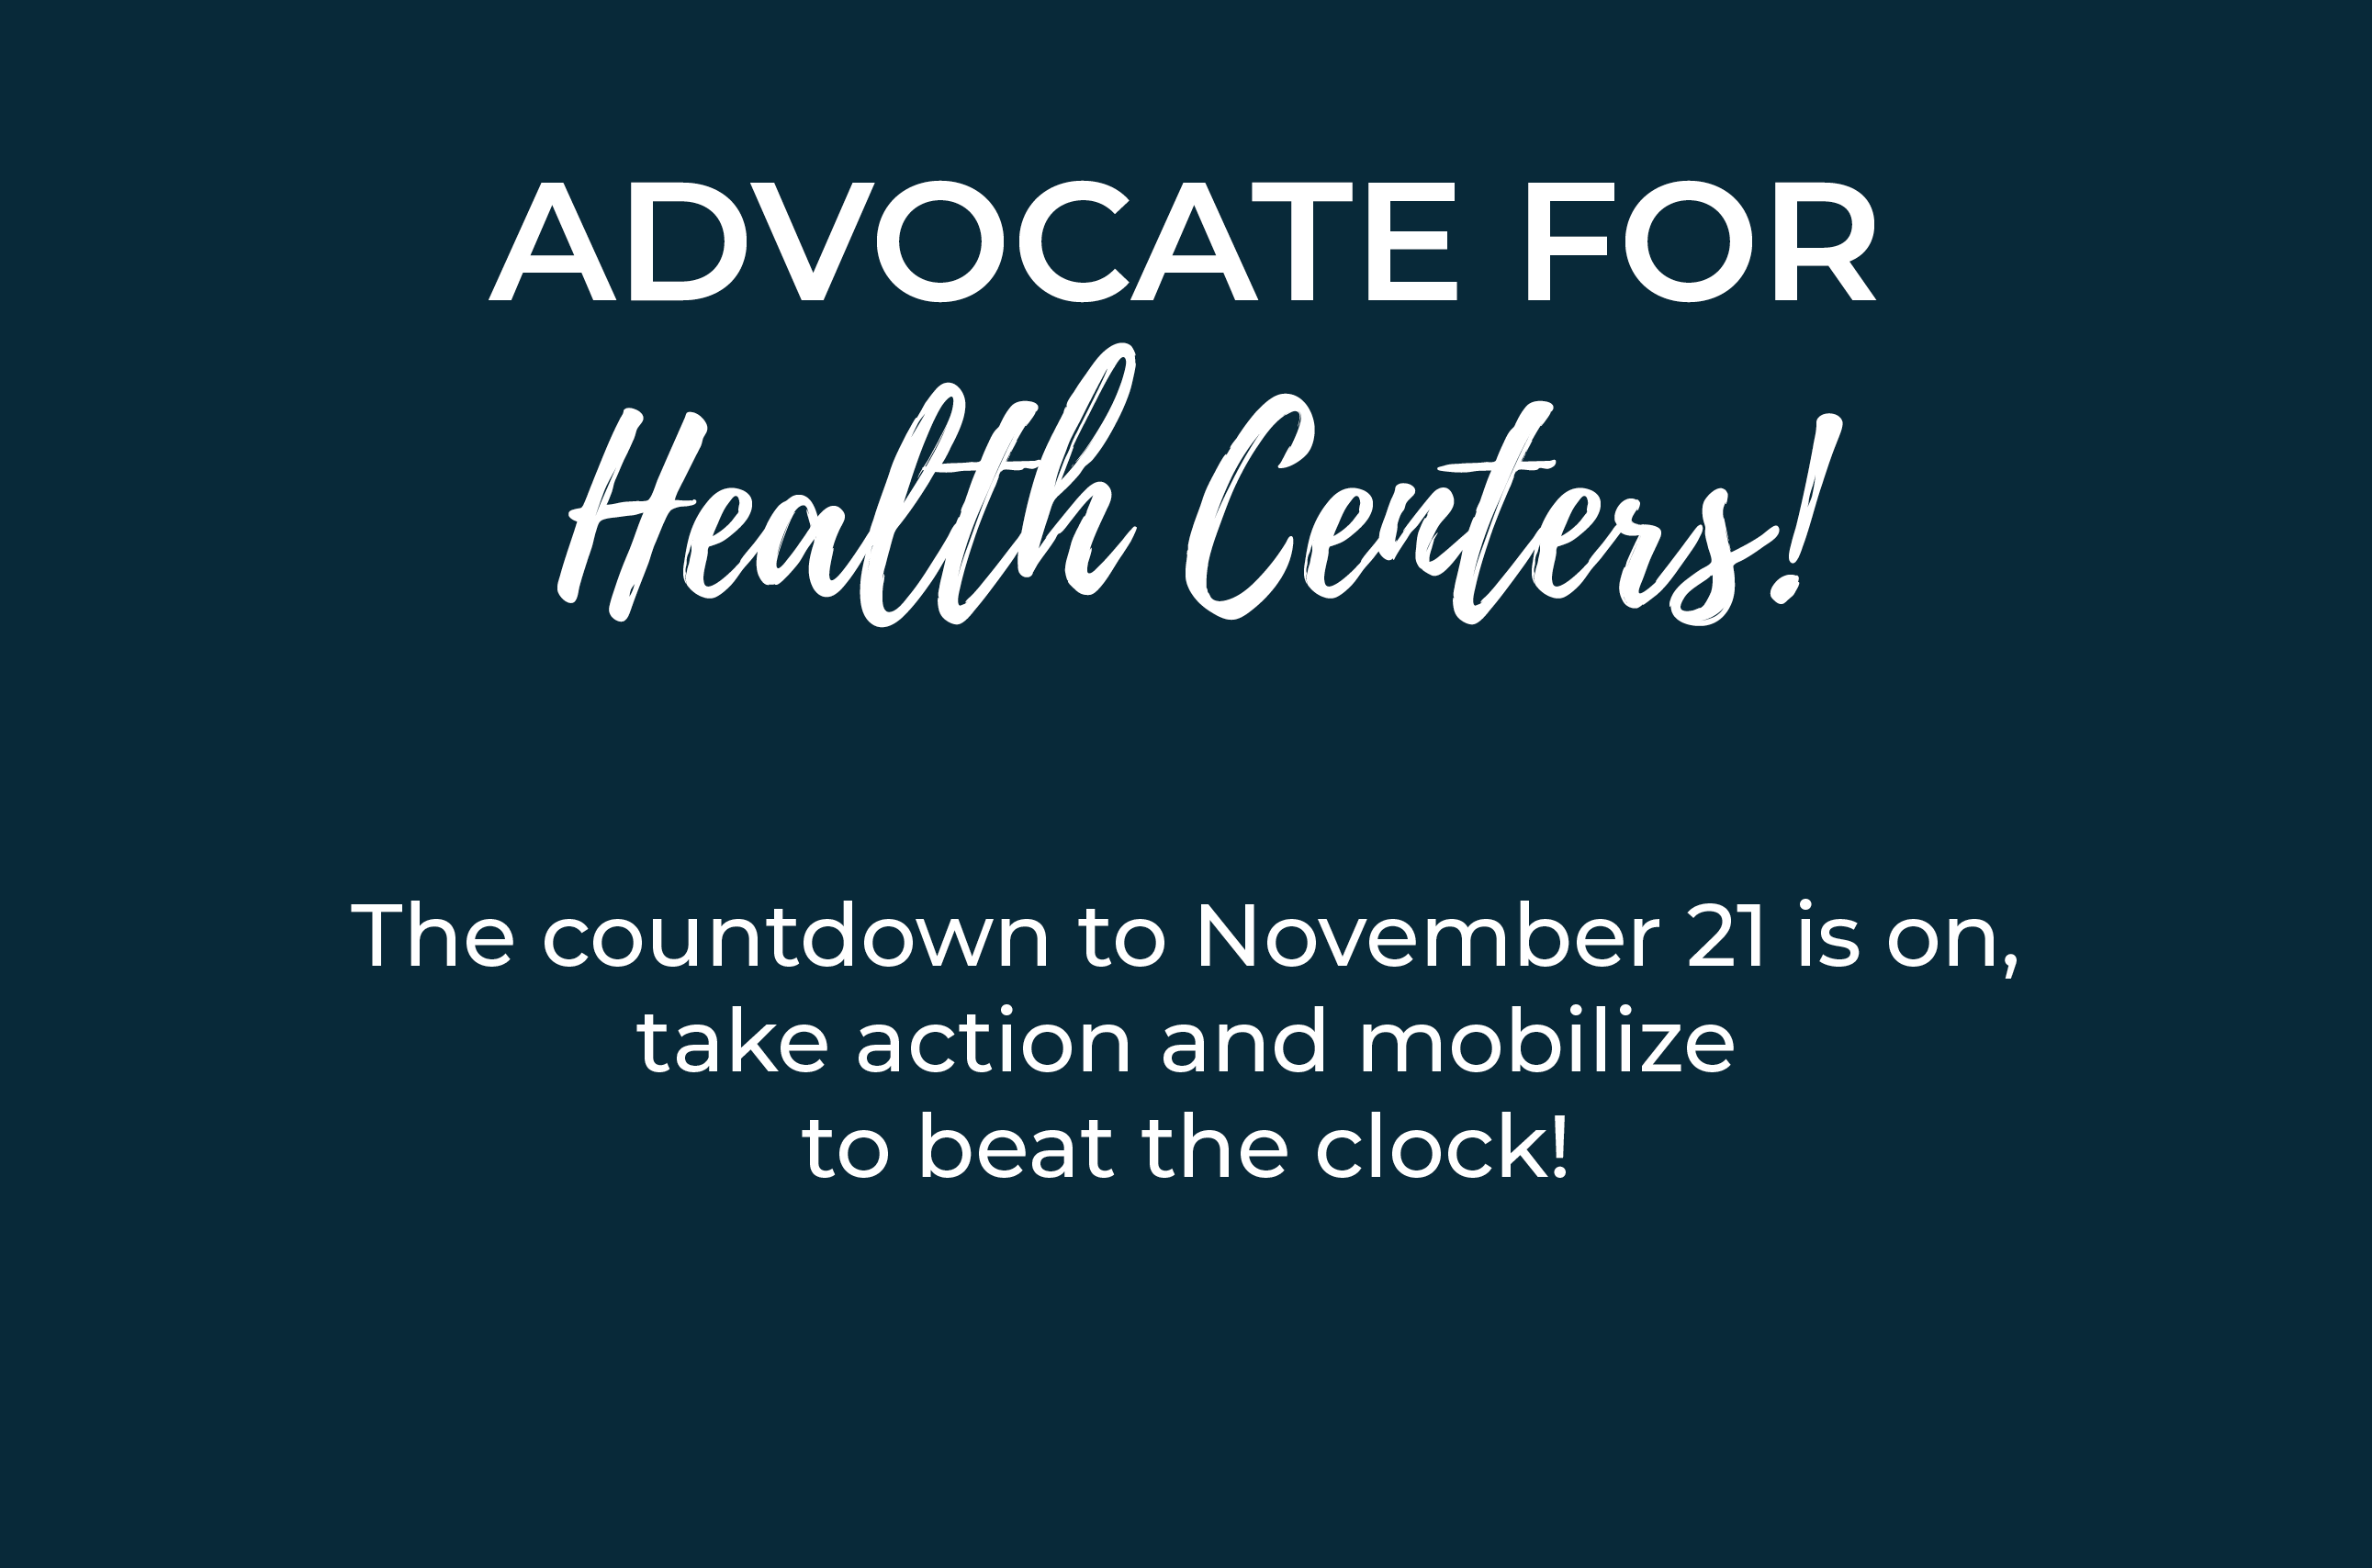 Advocate for Health Centers!